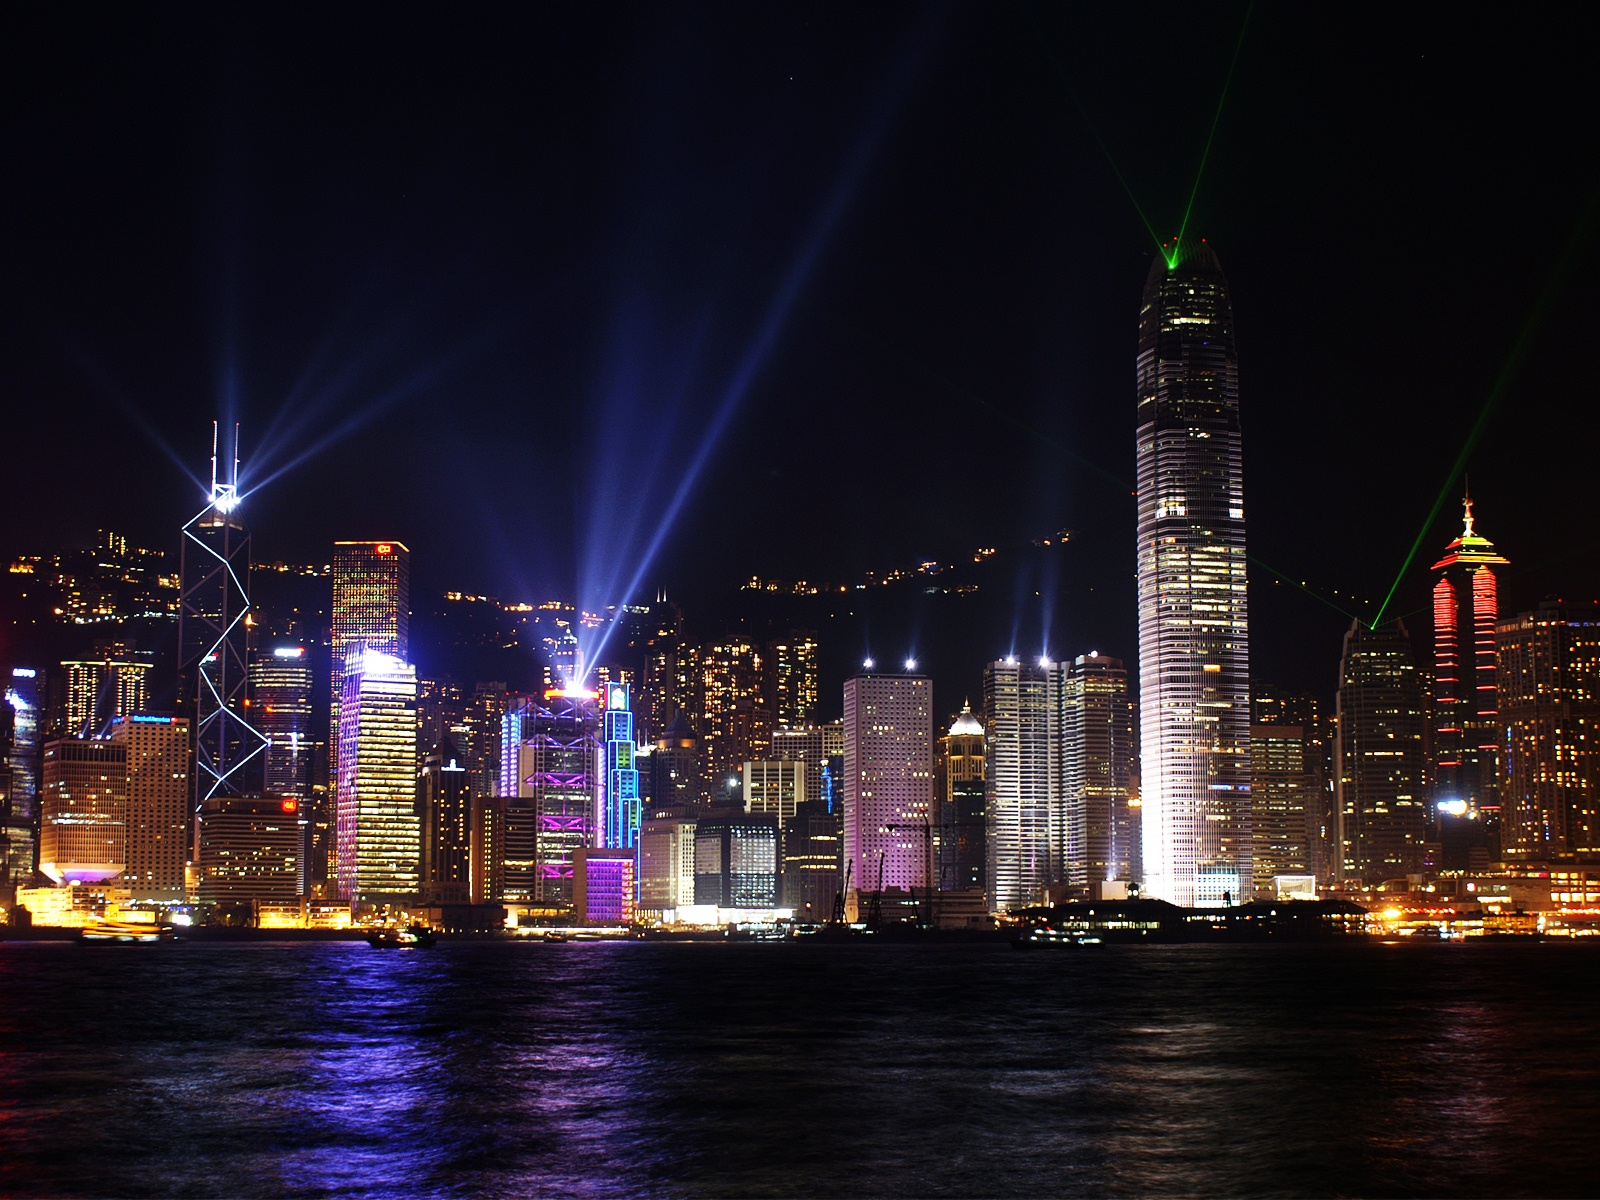 Hong Kong Night Skyline Wallpaper 39007